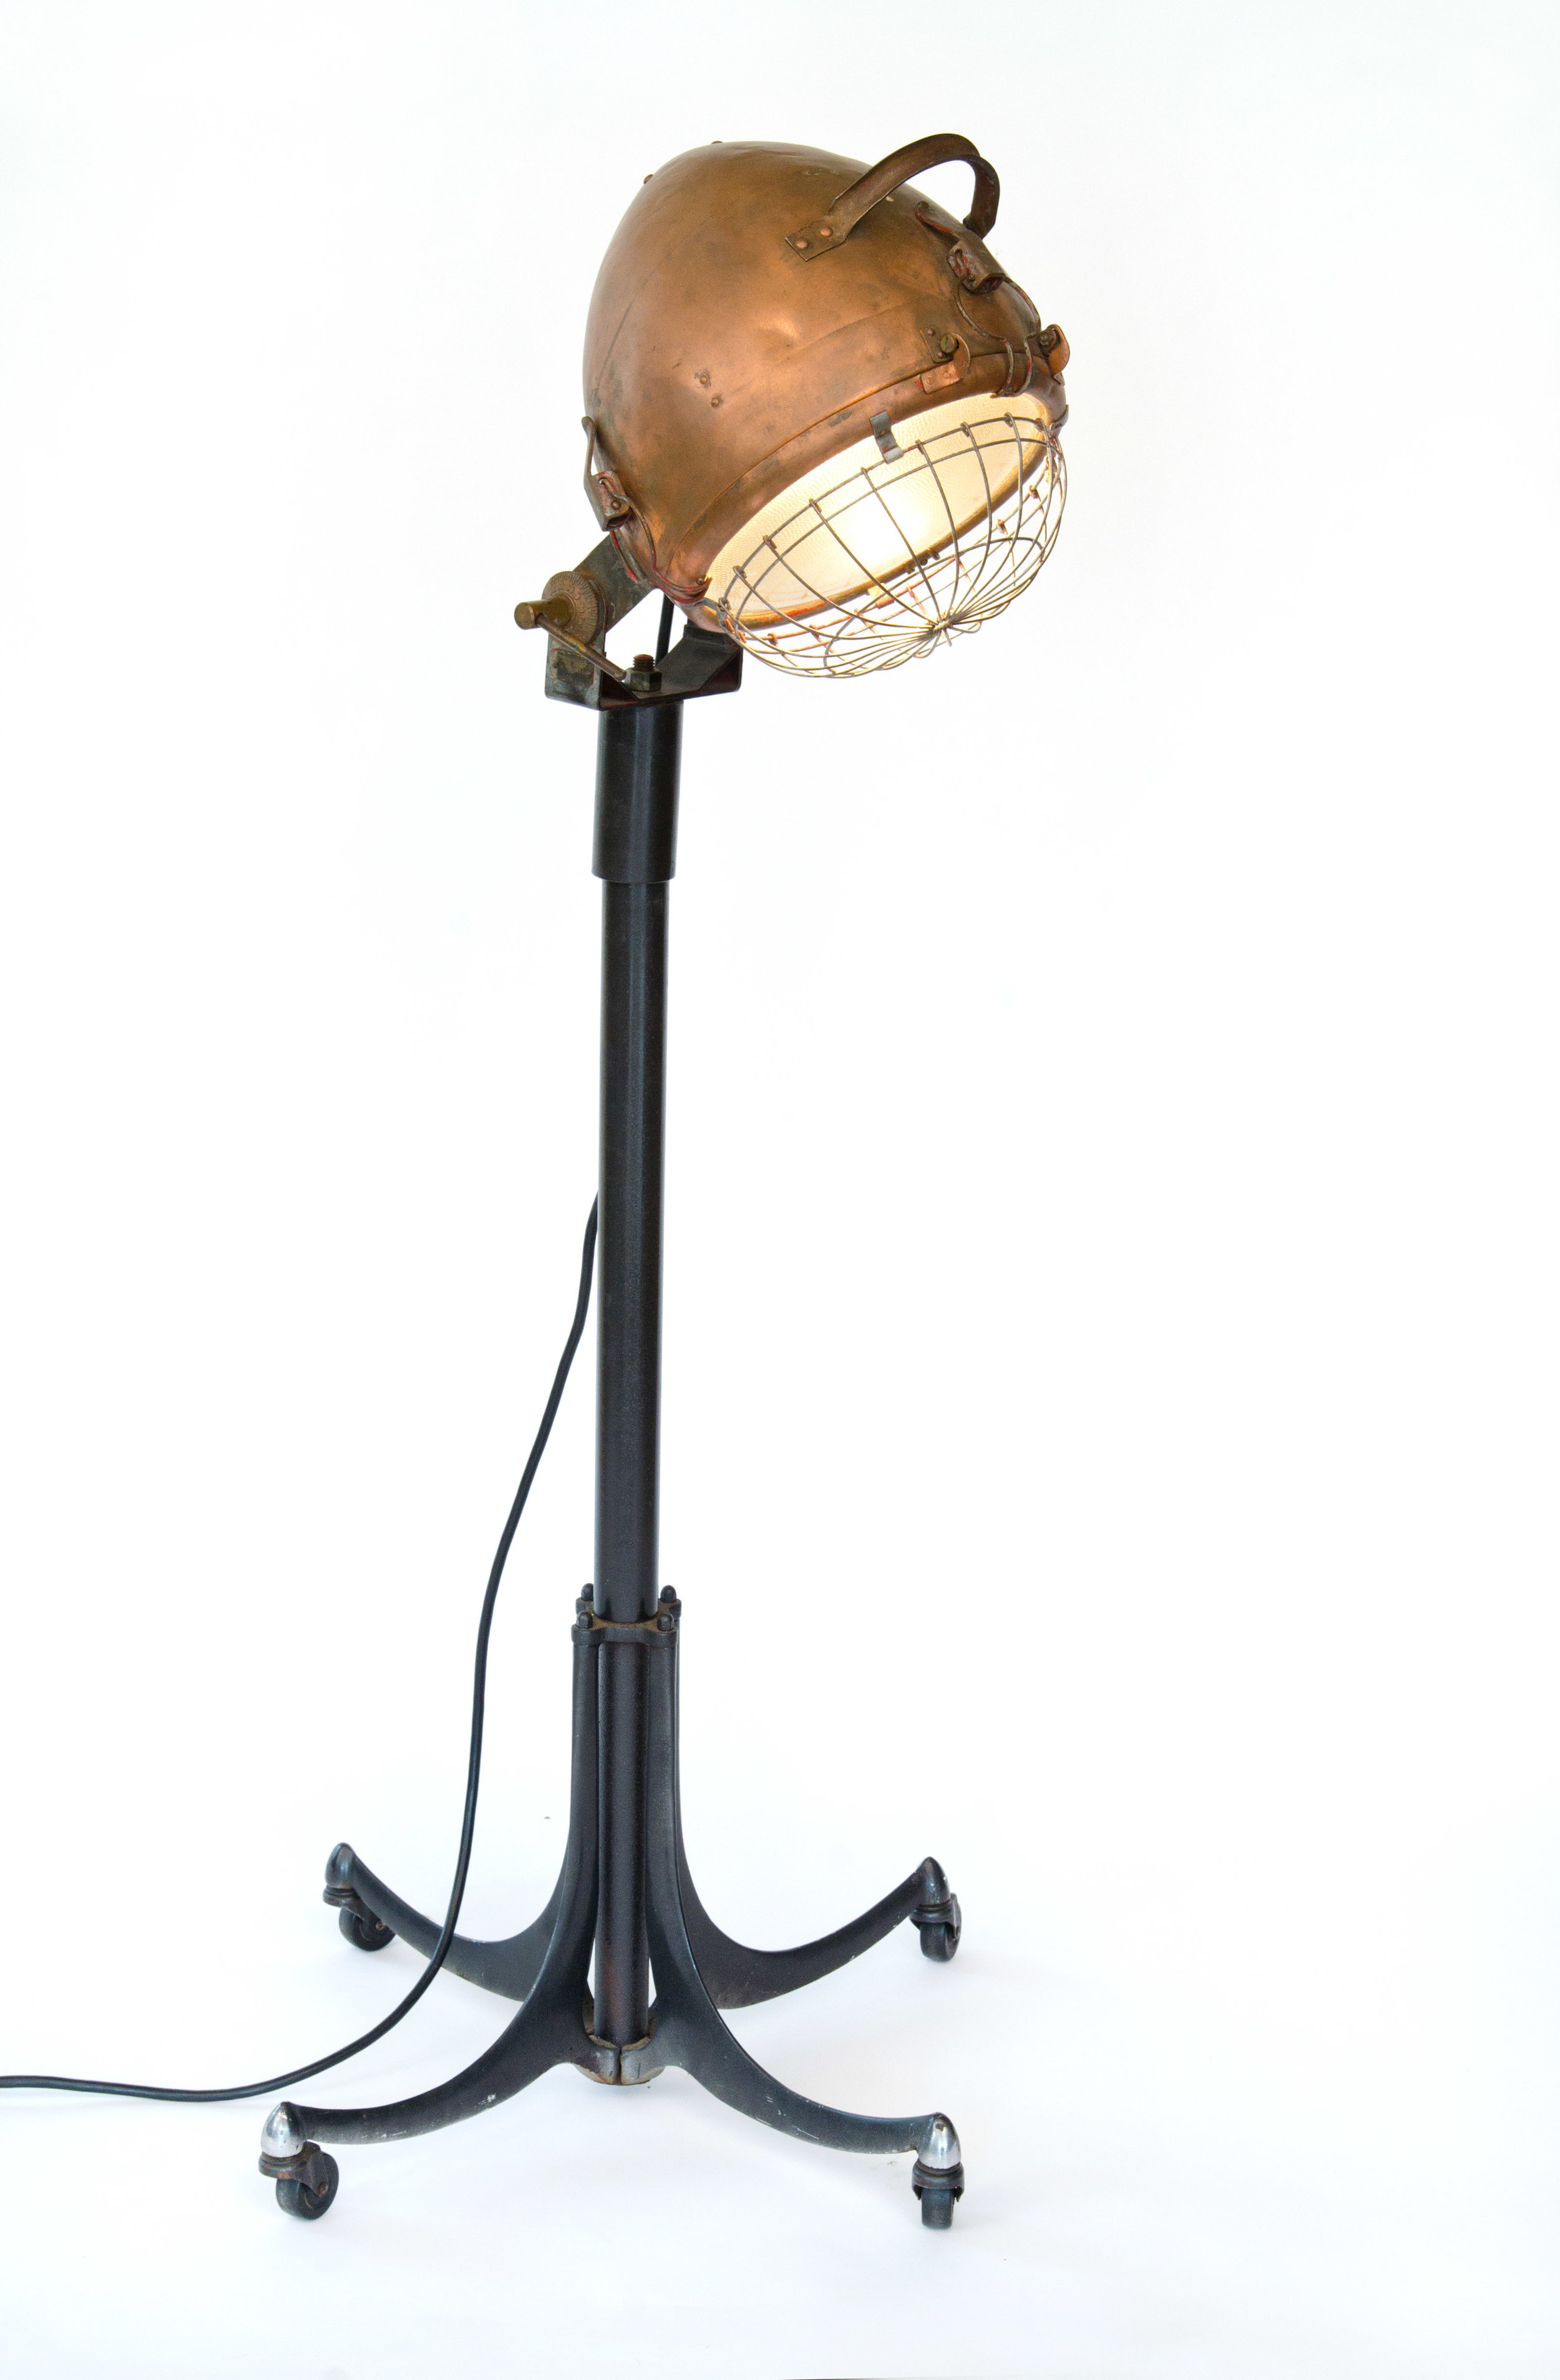 hess copper lamp stand.jpg